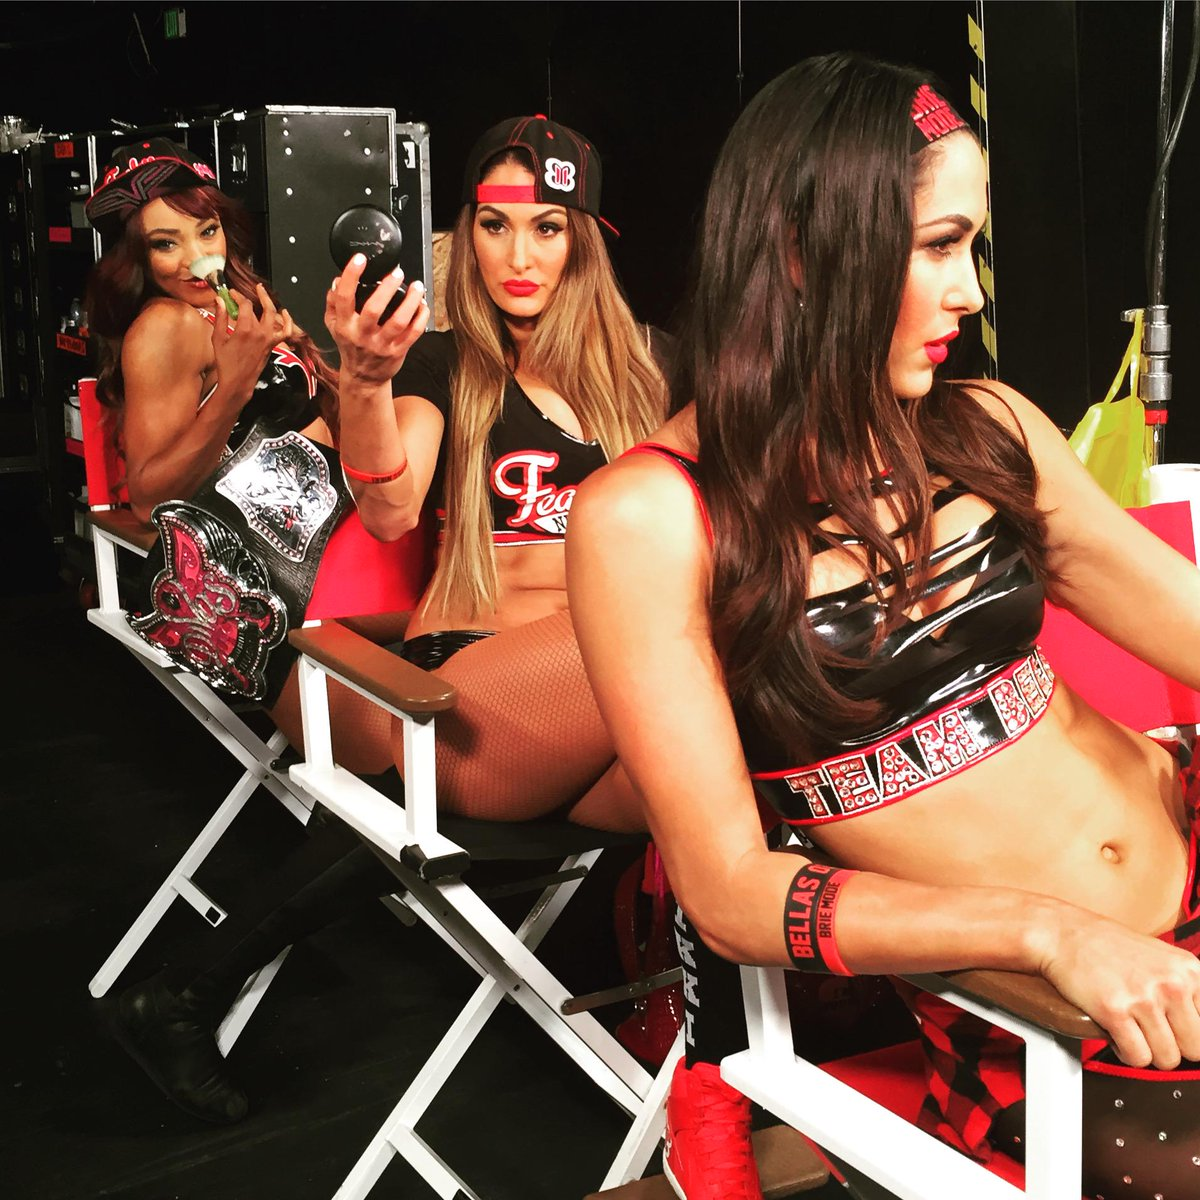 ....the clock is ticking... #TeamBELLA #Raw http://t.co/hSITGdzAA6